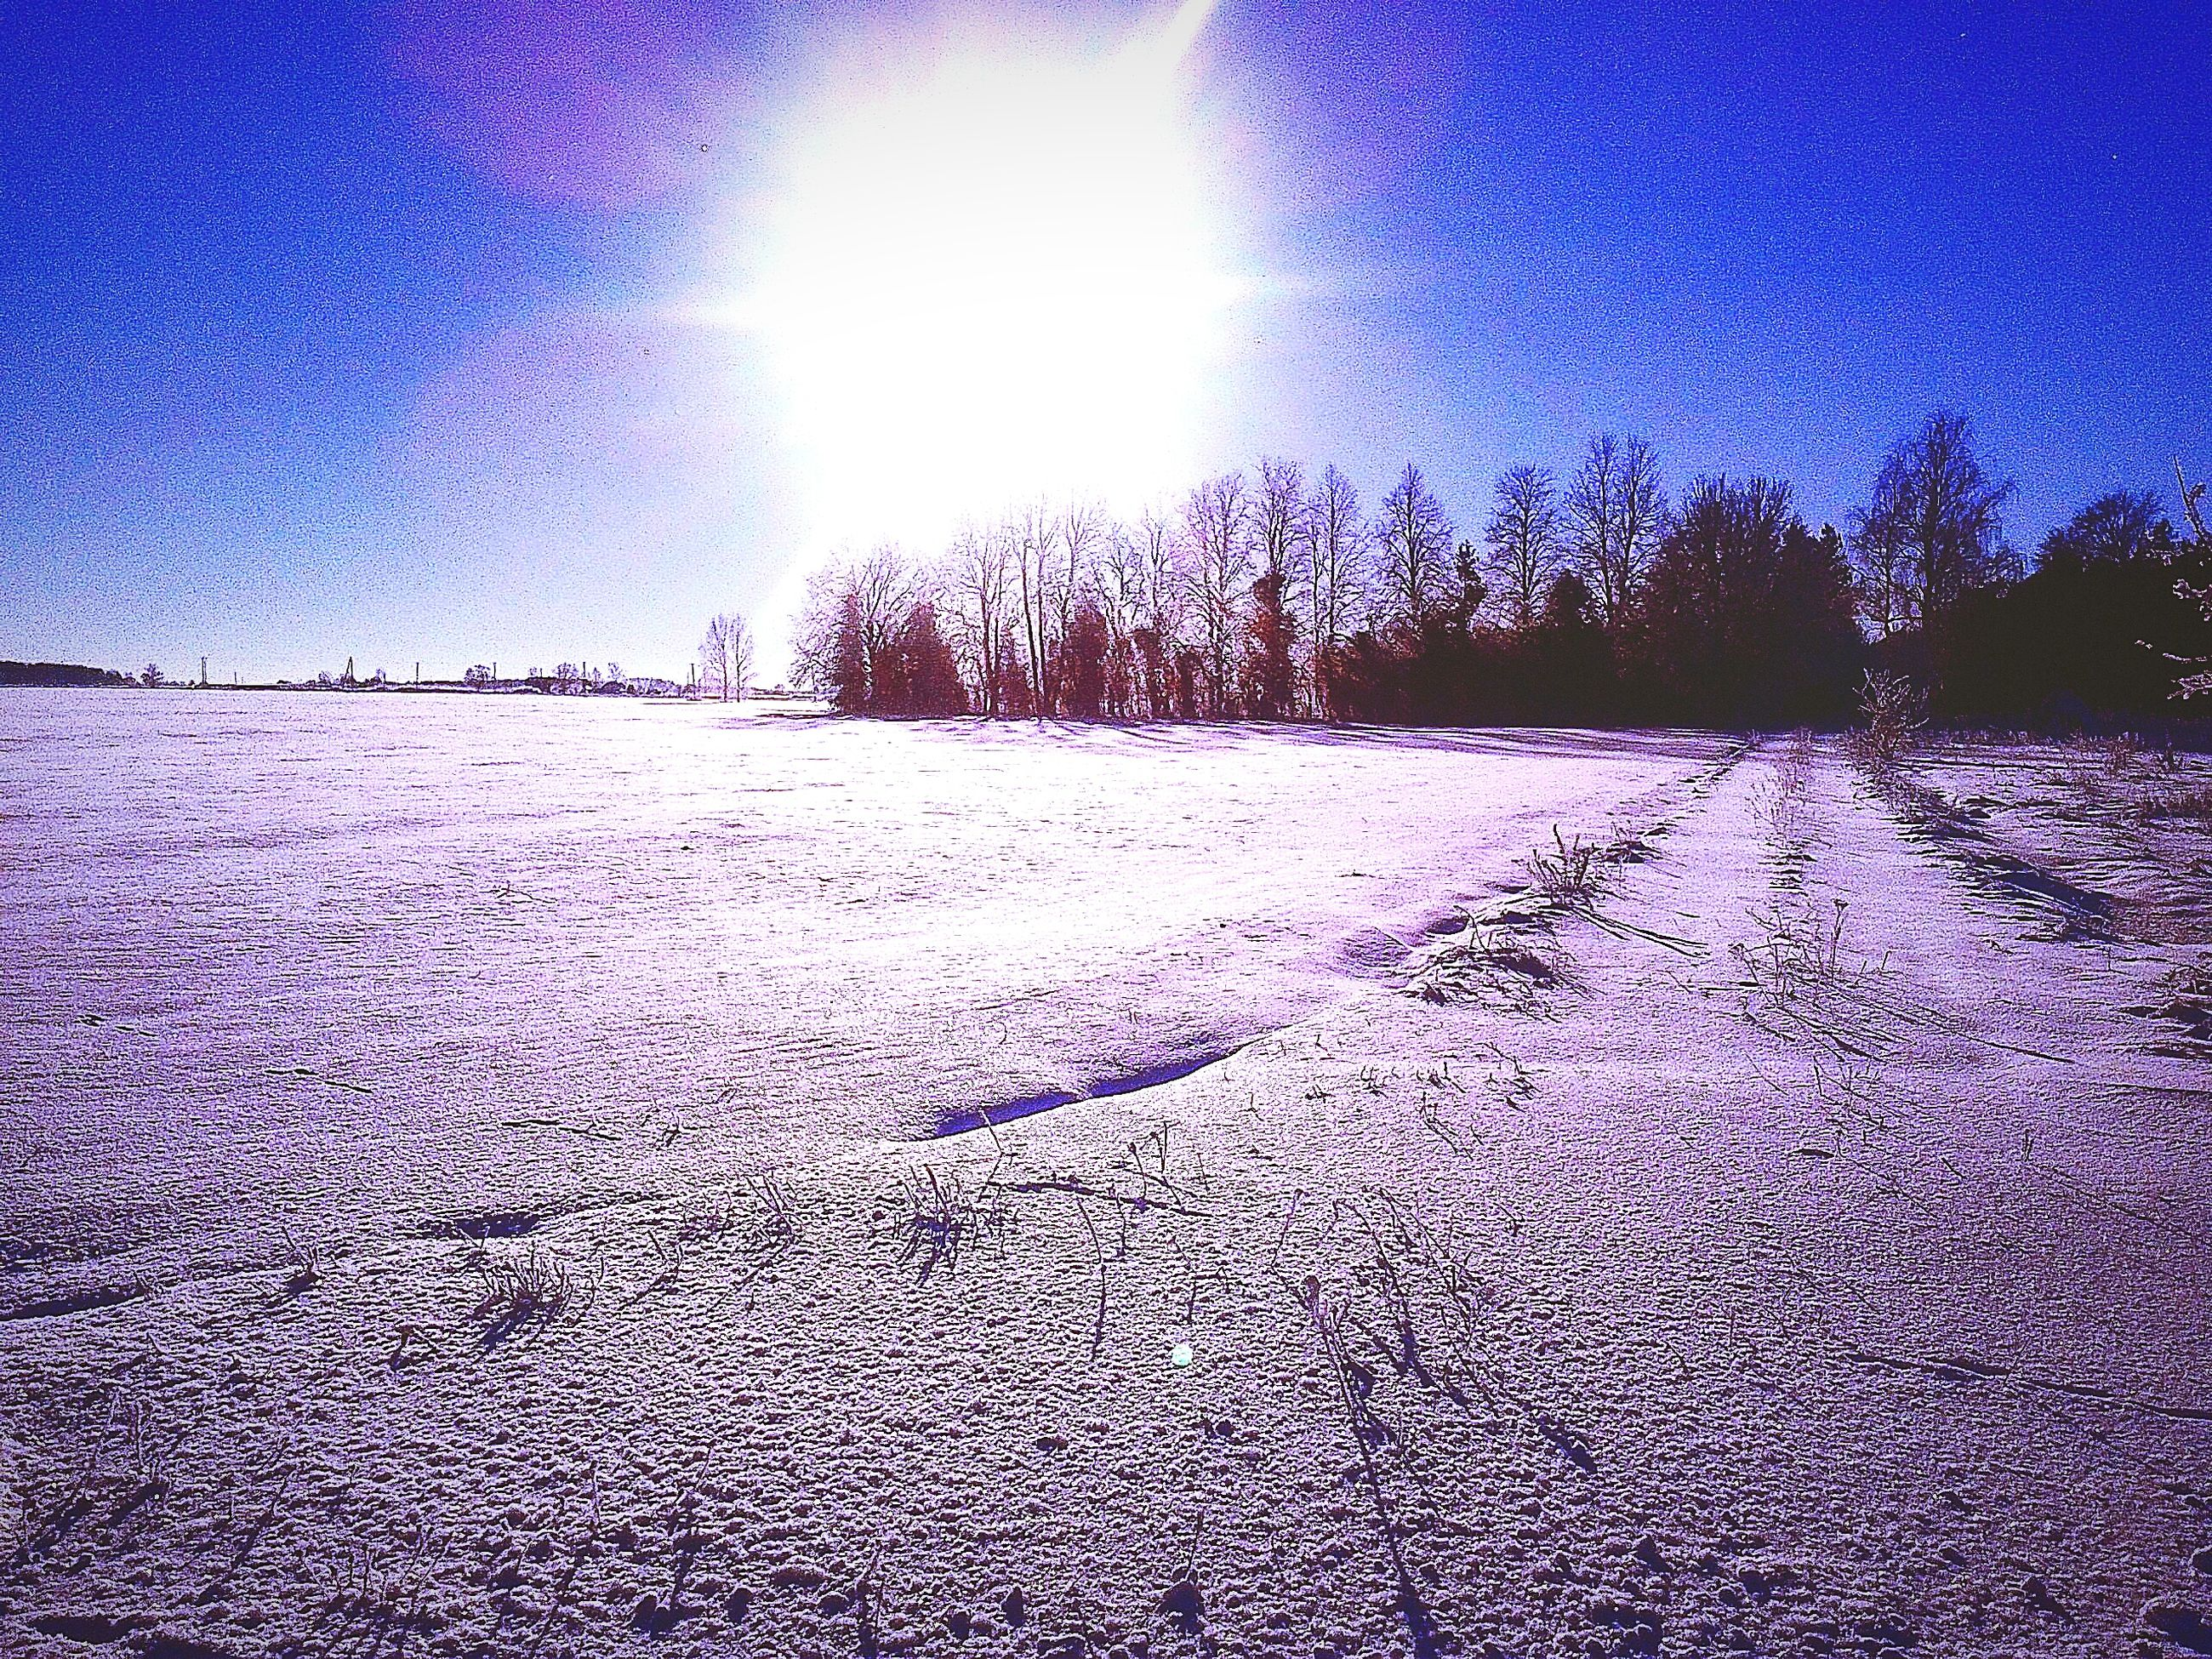 blue, snow, winter, cold temperature, sunlight, clear sky, the way forward, tranquility, nature, sun, sunbeam, tranquil scene, sky, lens flare, season, tree, surface level, landscape, sunny, outdoors